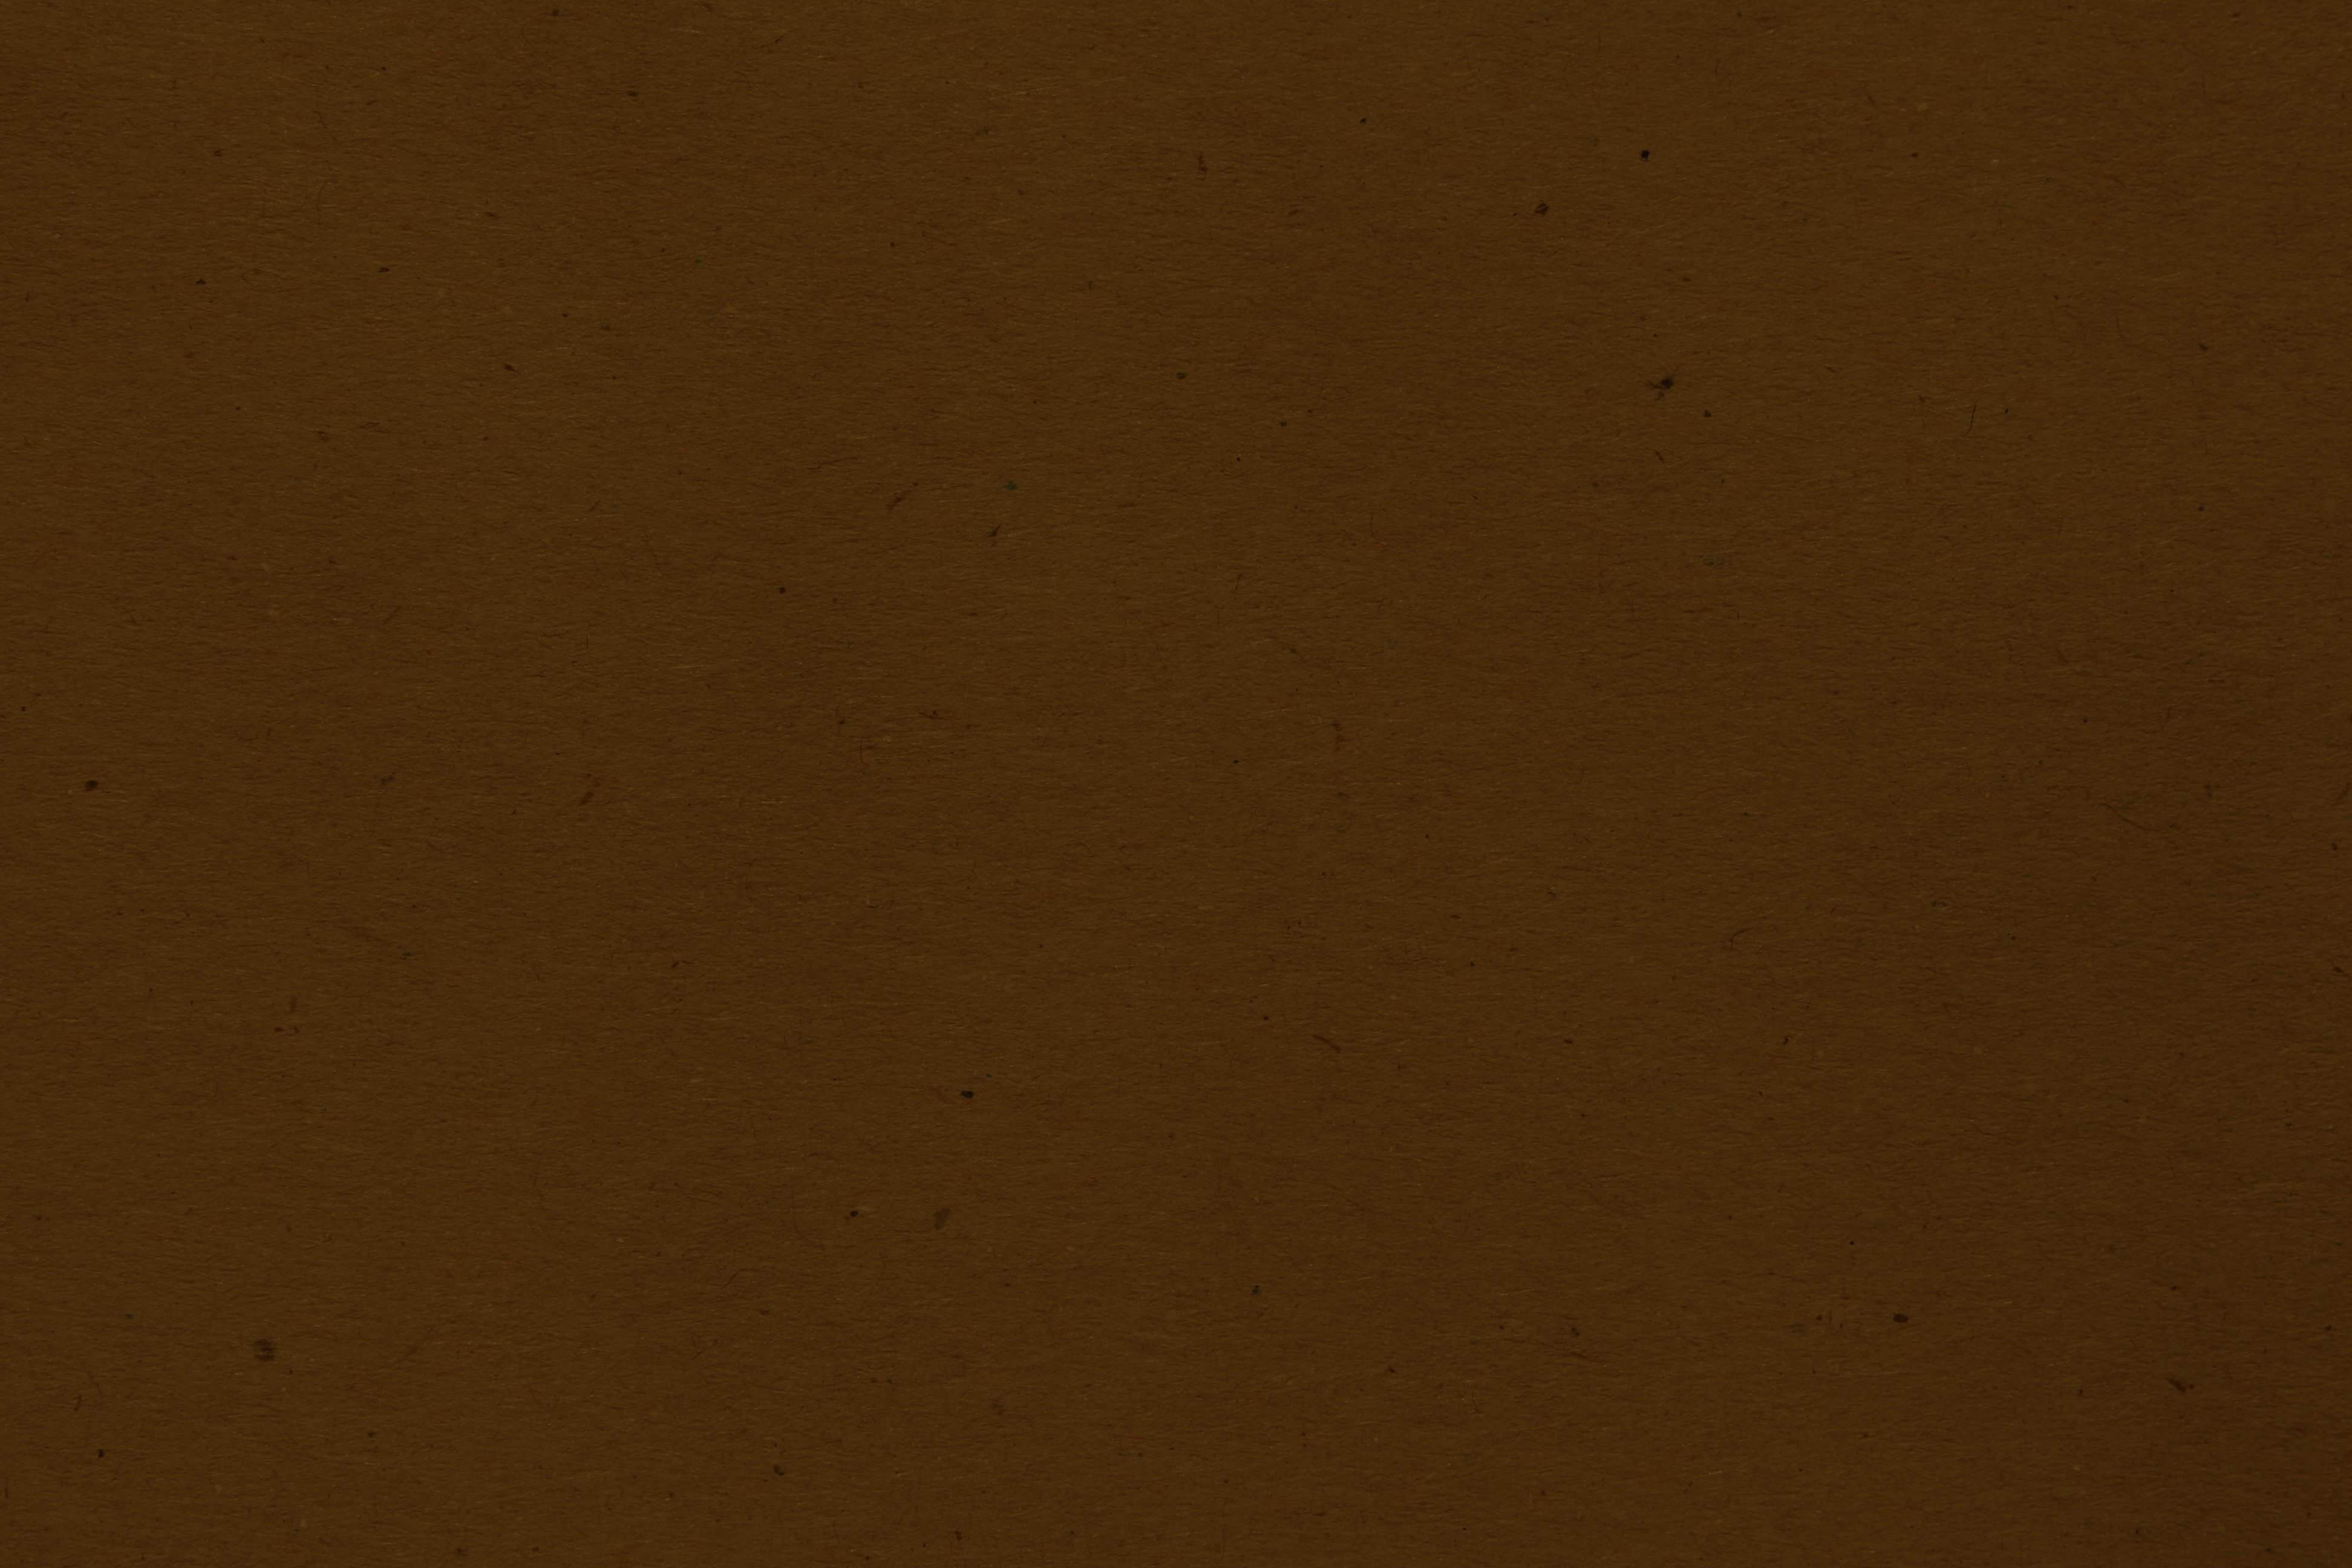 Brown Paper Texture with Flecks Picture | Free Photograph | Photos ...